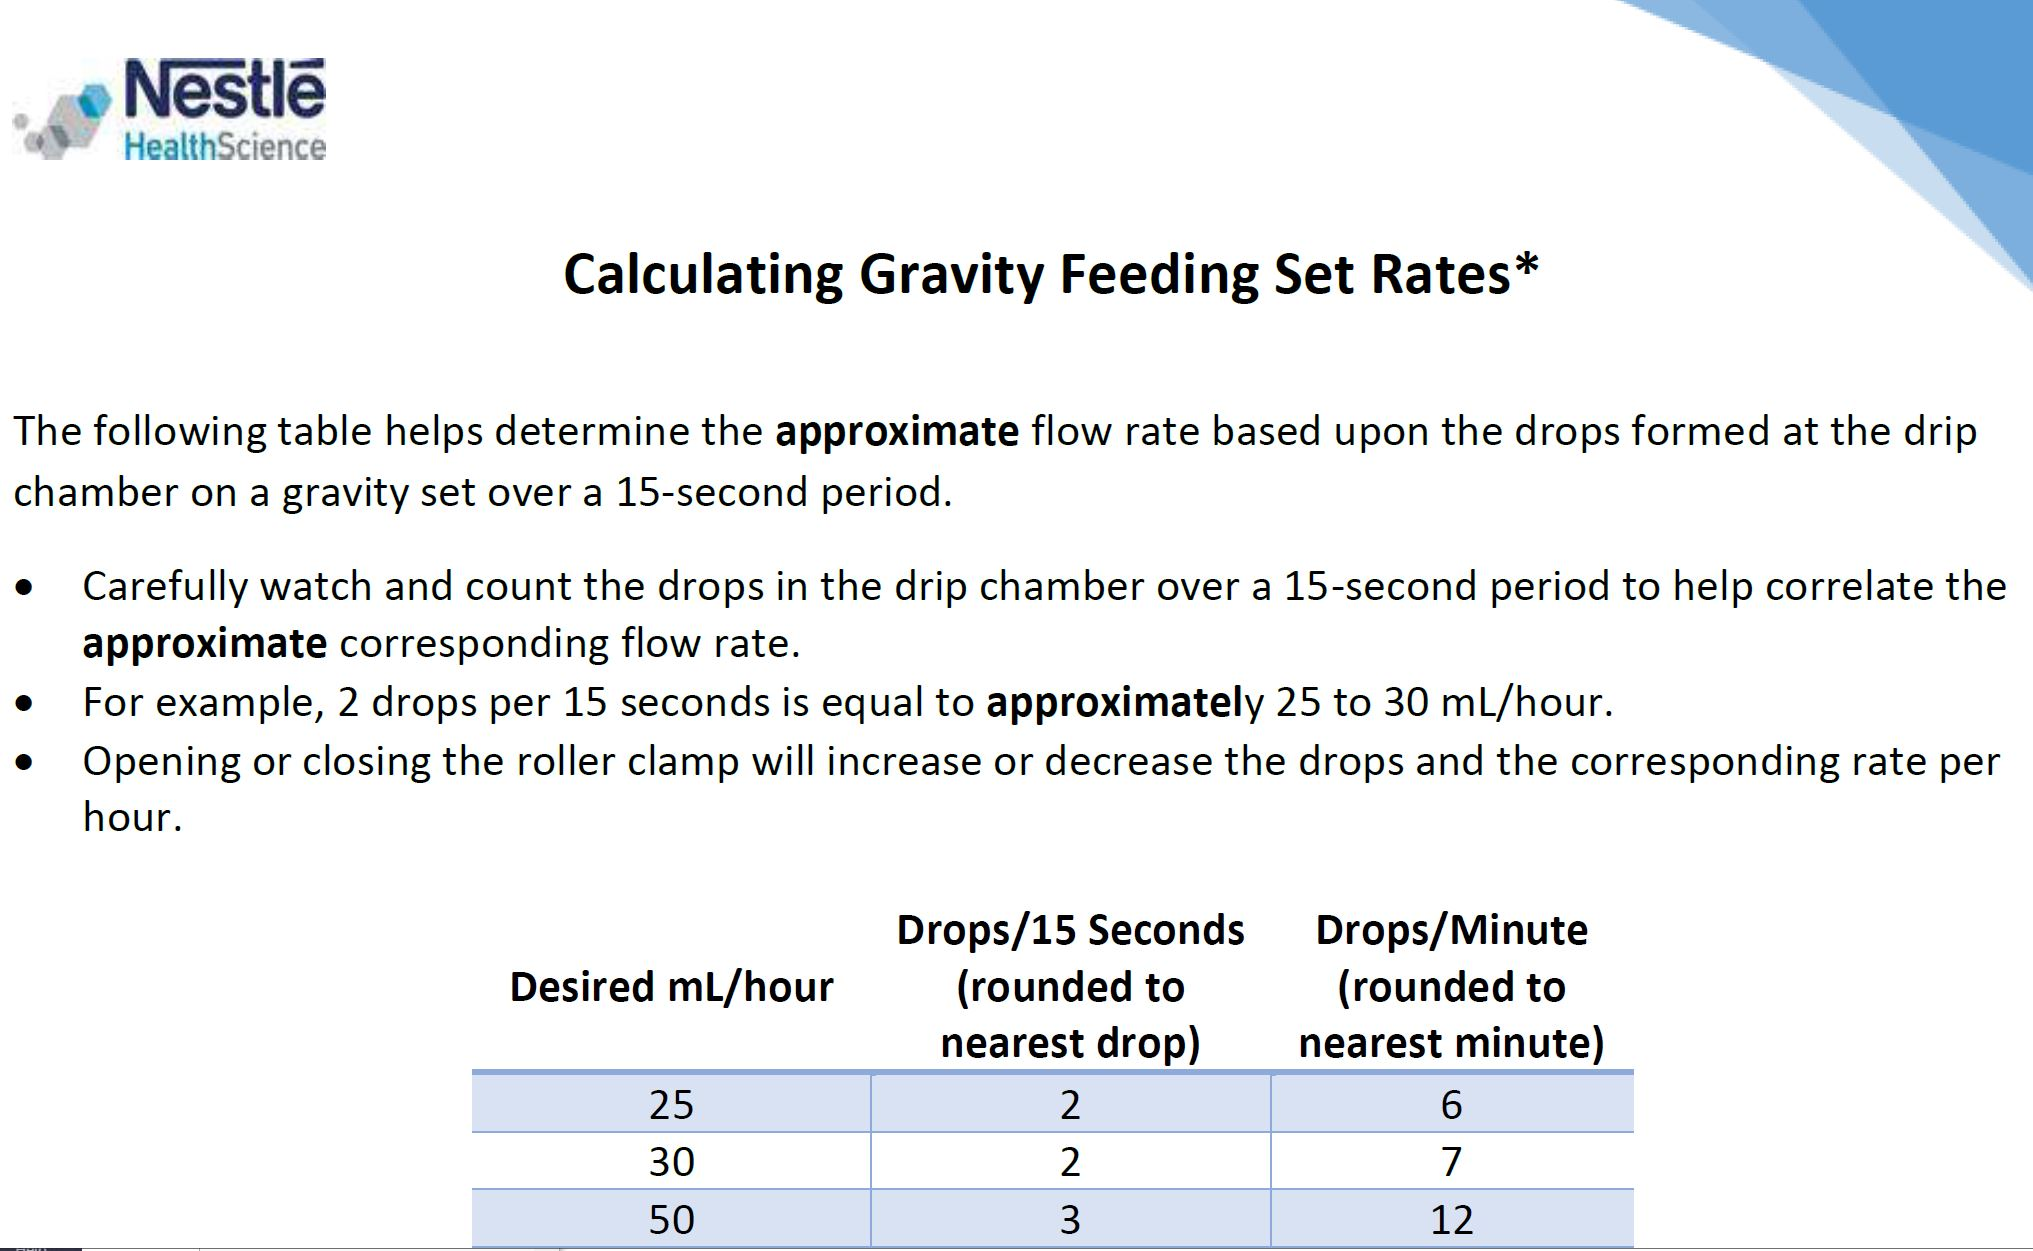 Calculating Gravity Feeding Set Rates